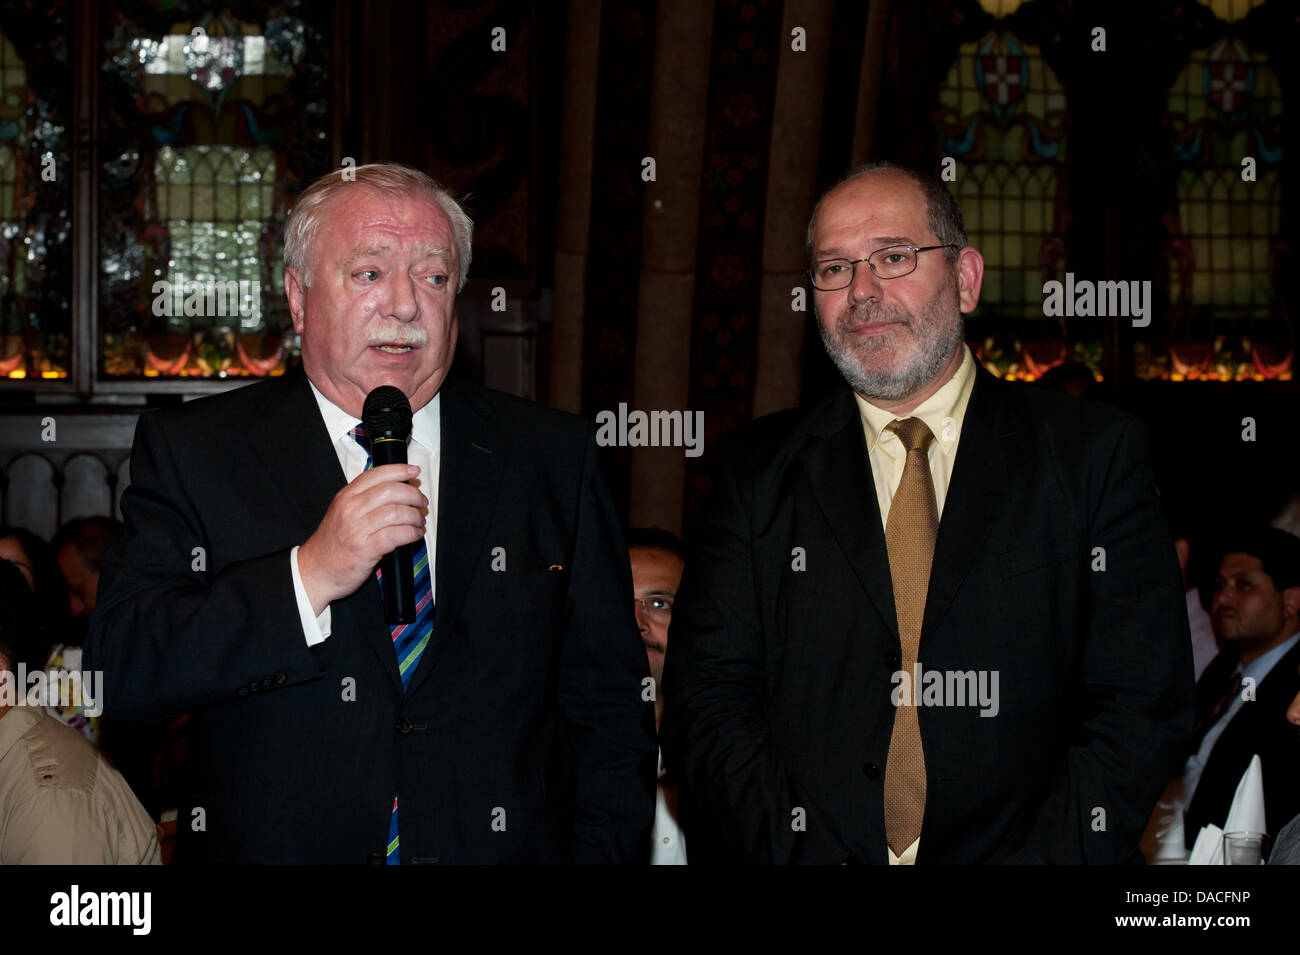 Representatives of the Muslim community in Vienna and Mayor Dr. Michael Häupl - Stock Image